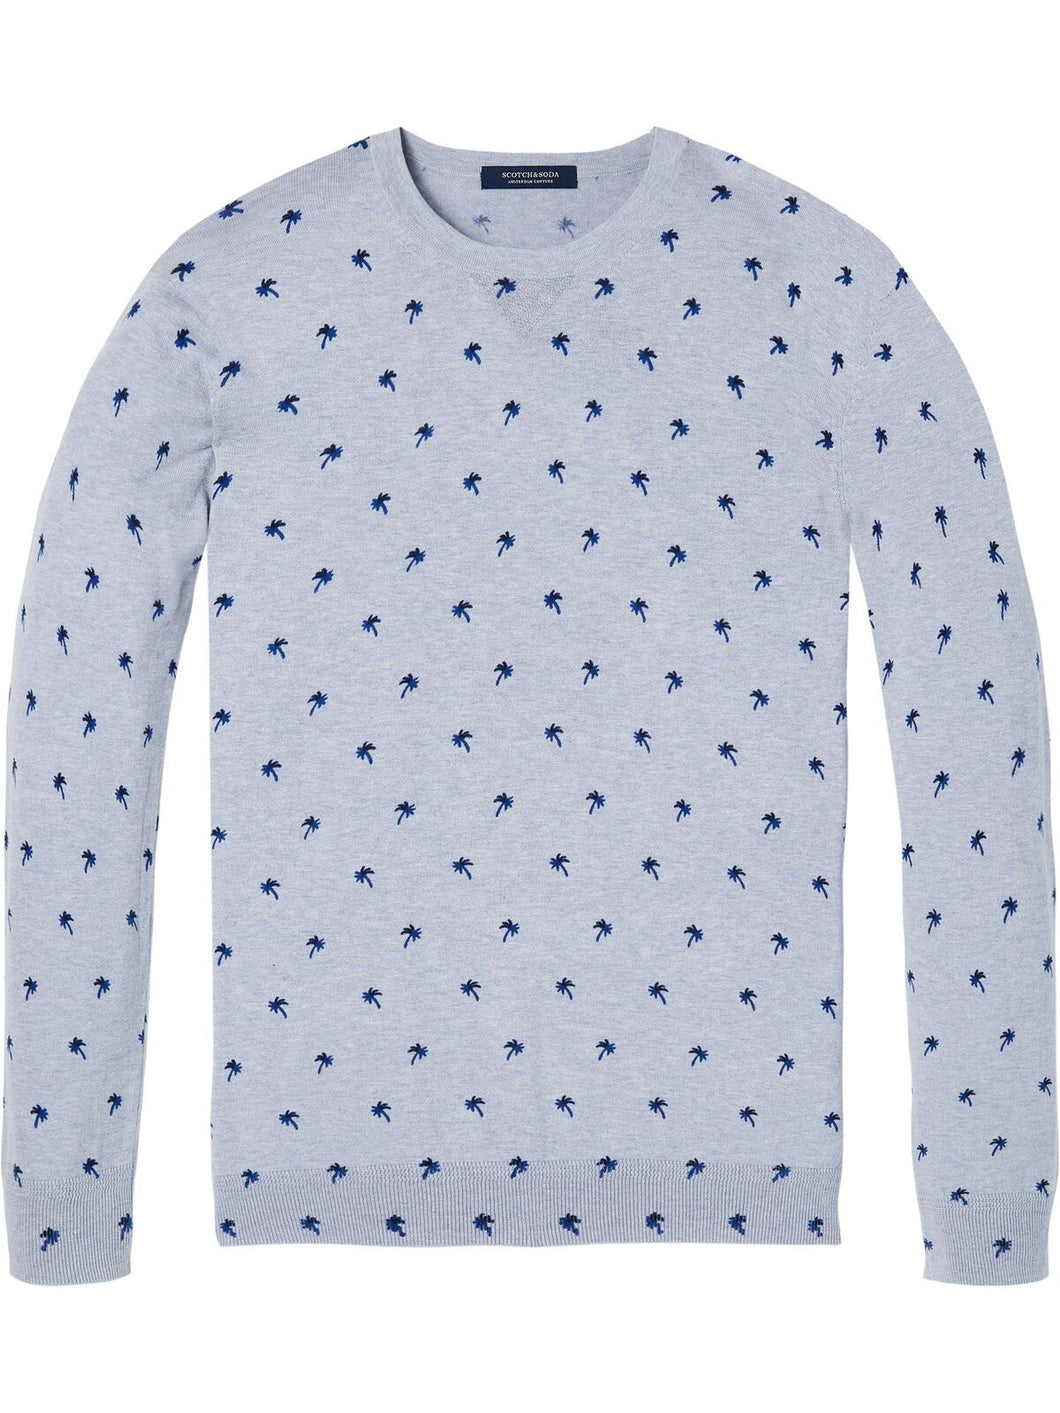 Scotch & Soda, Crewneck pullover with palm trees - Combo B